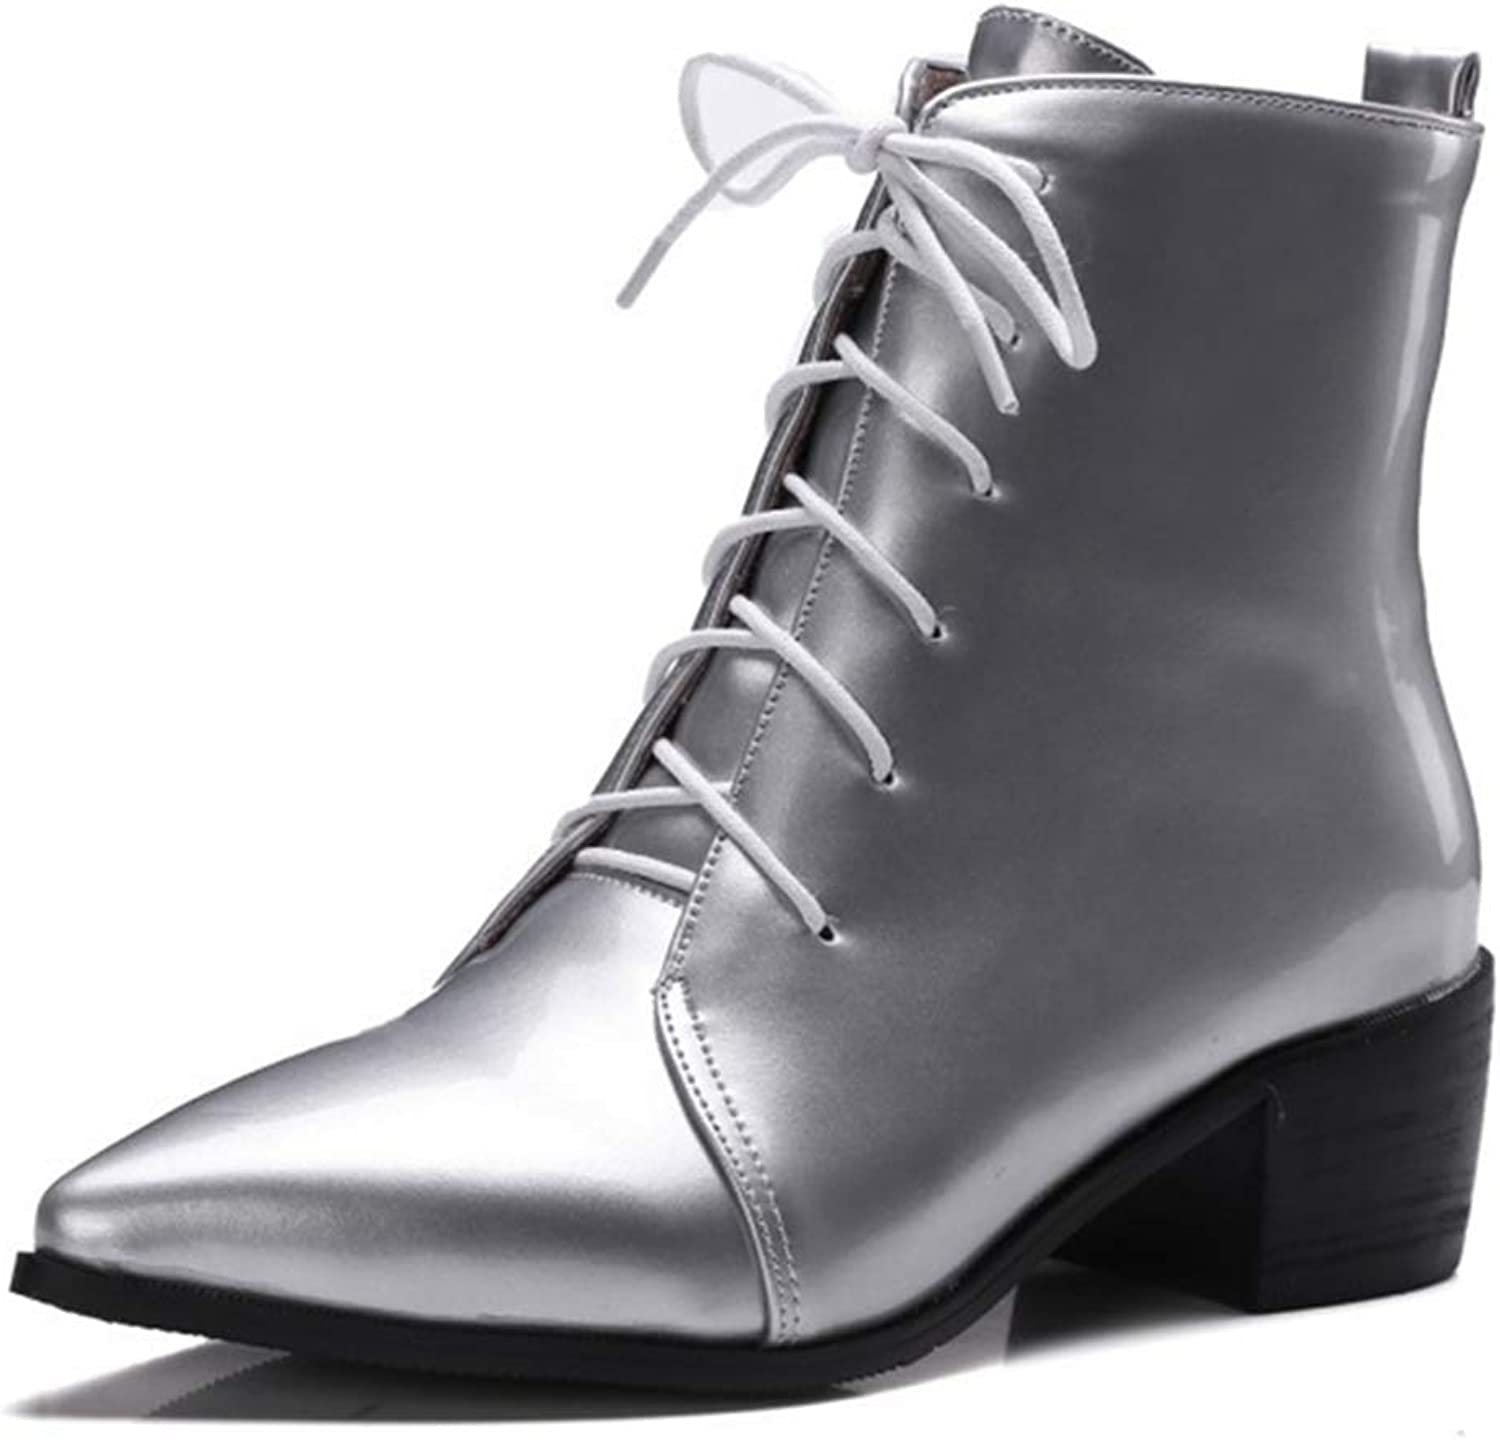 GIY Women Round Toe Retro Low Chunky Heel Ankle Boots Faux Leather Pointed Toe Lace-Up Knight Martin Boots